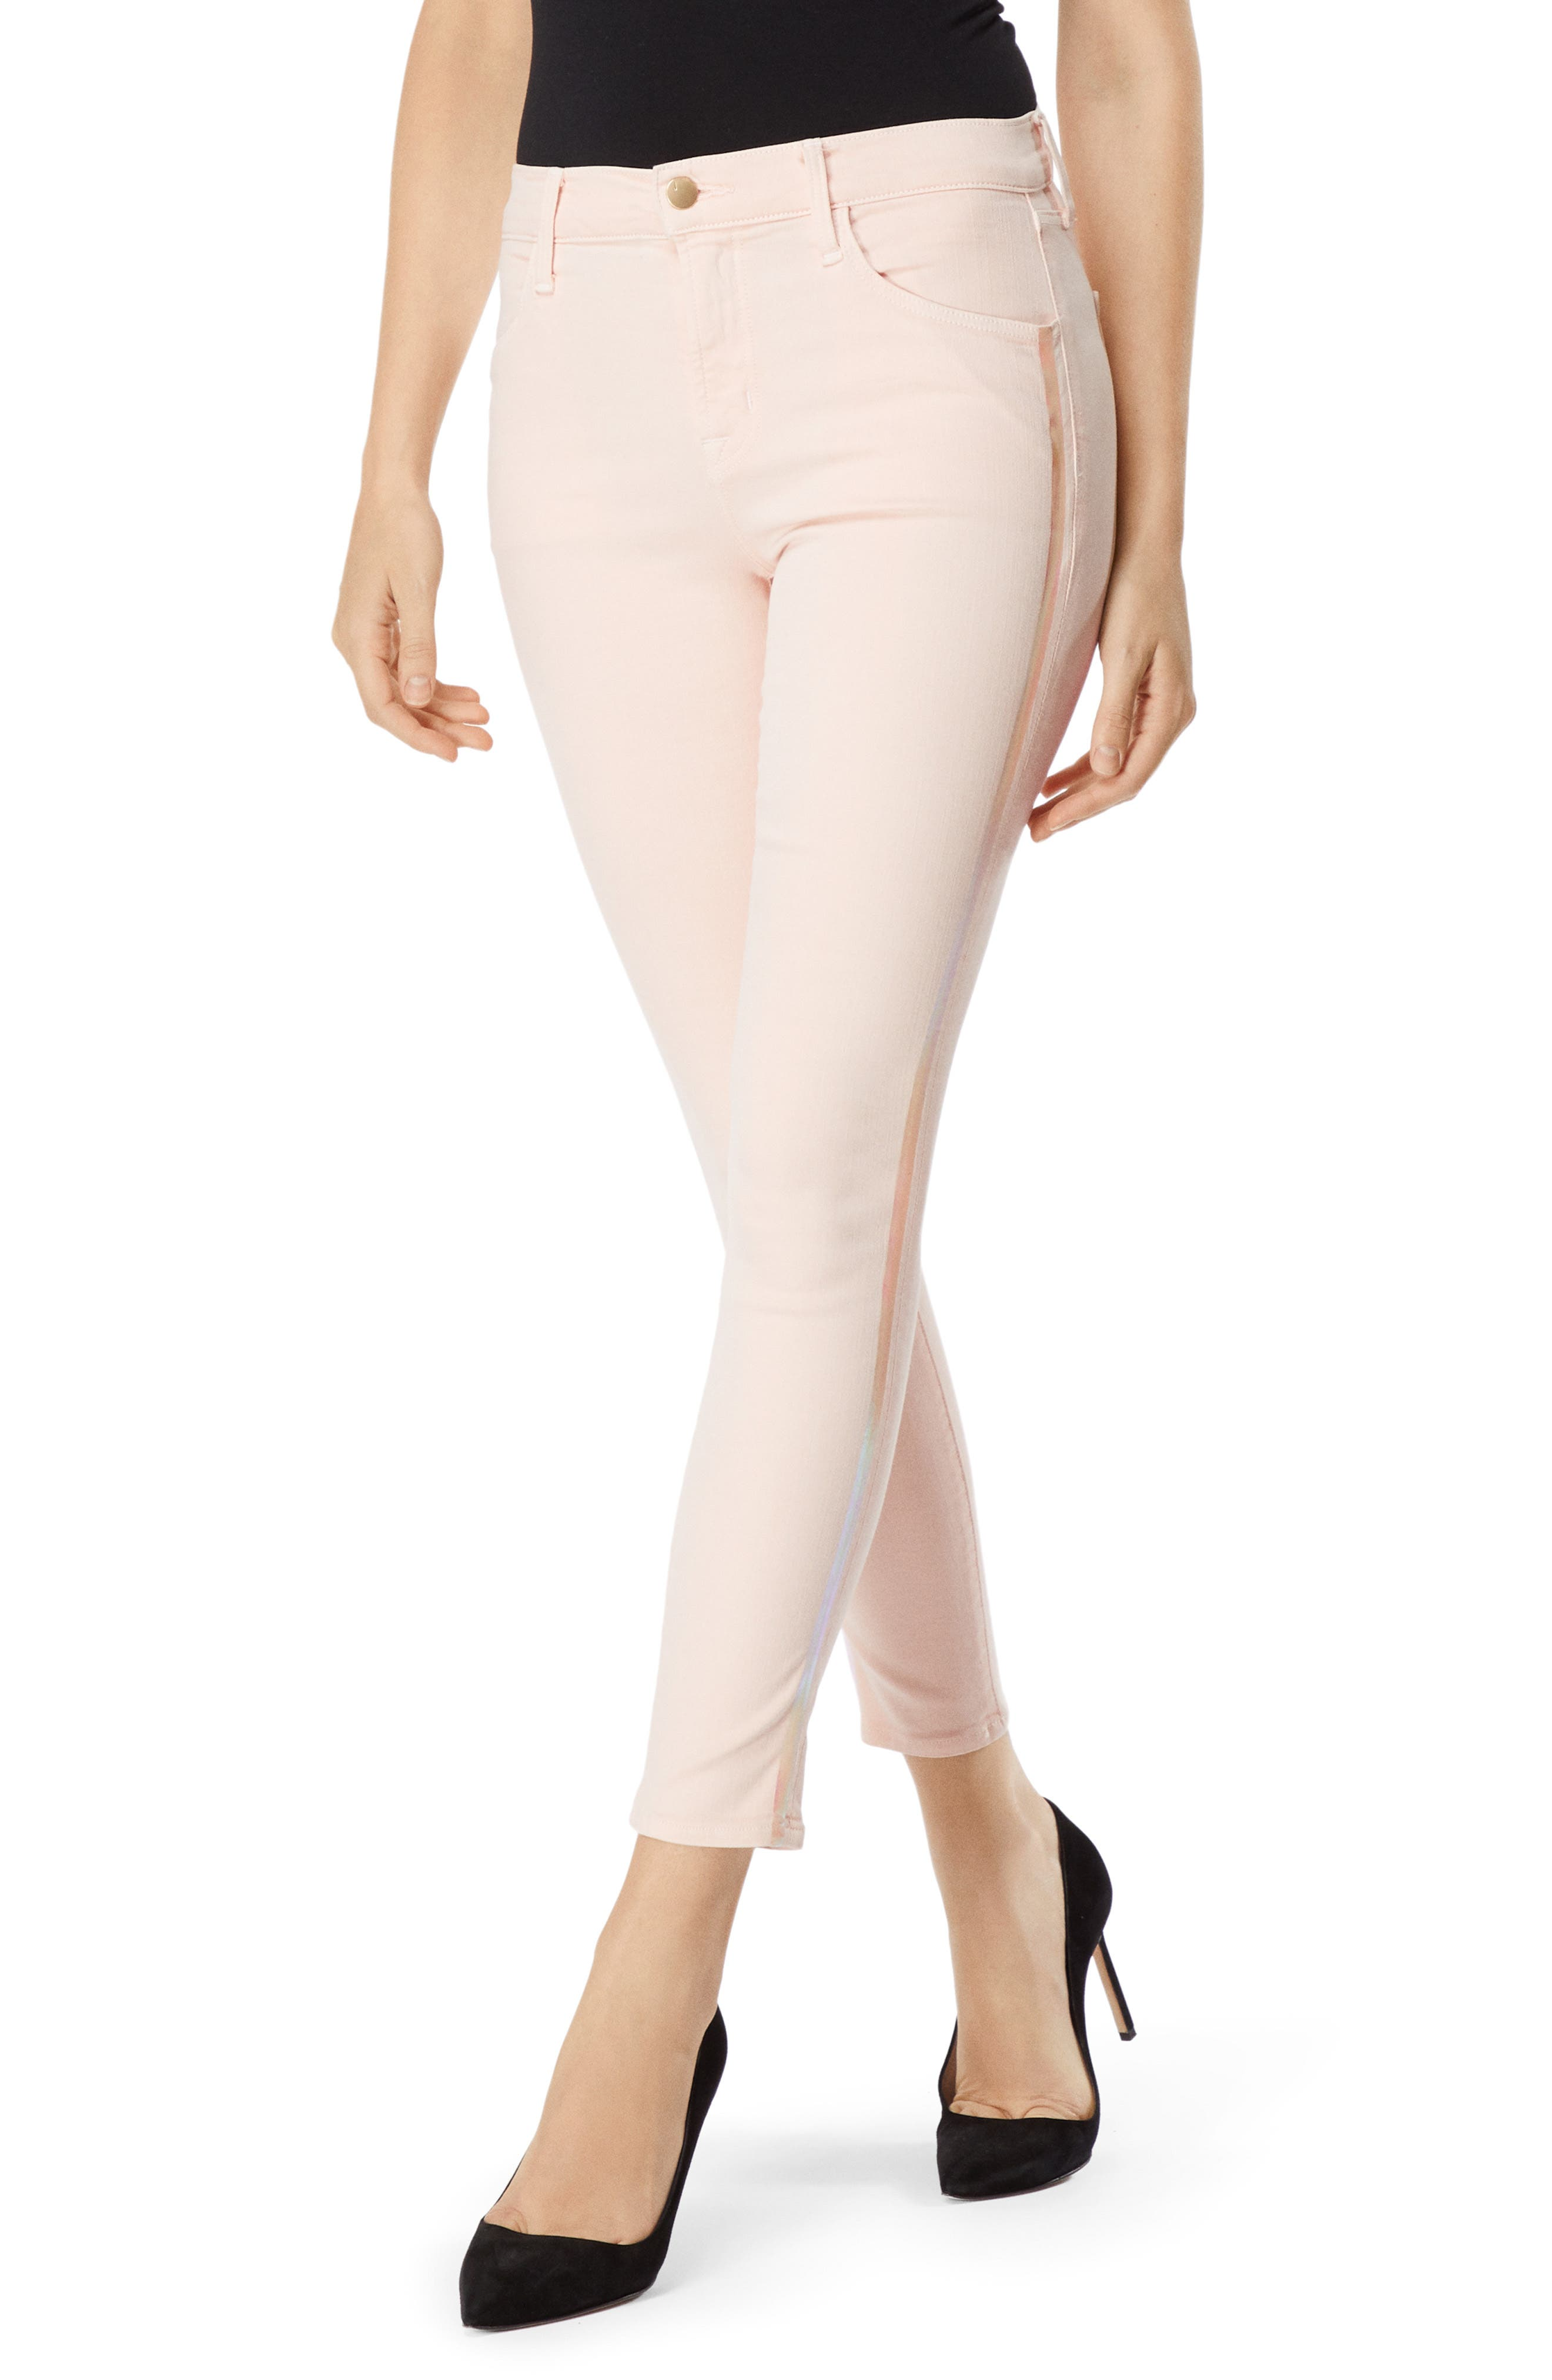 Alana High Waist Ankle Skinny Jeans,                             Main thumbnail 1, color,                             DISTRESSED LULLED